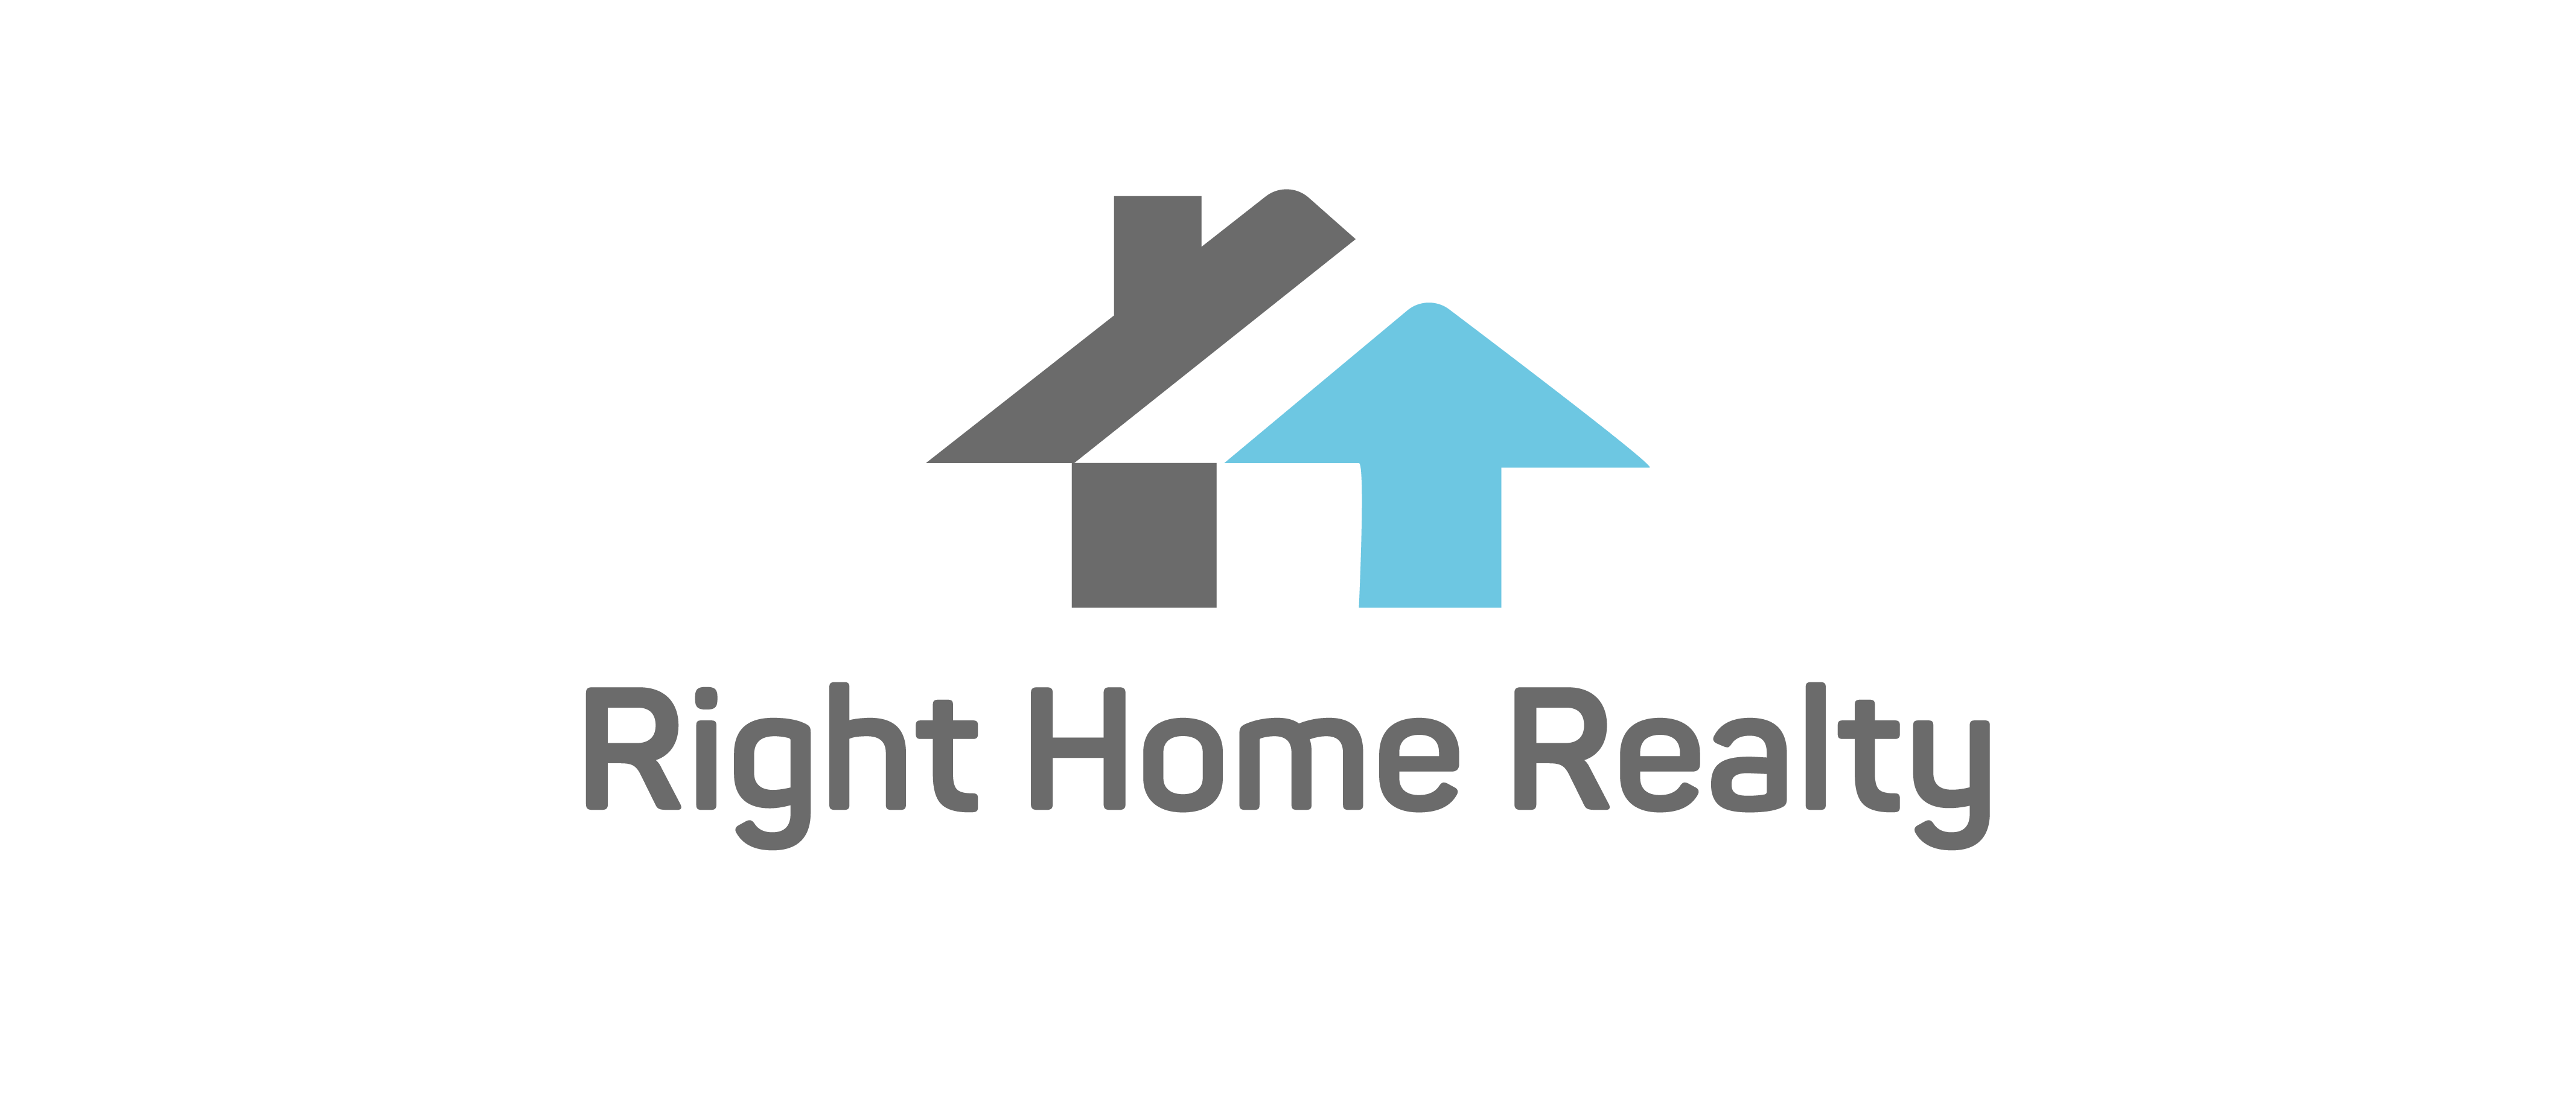 Right Home Realty, Inc.